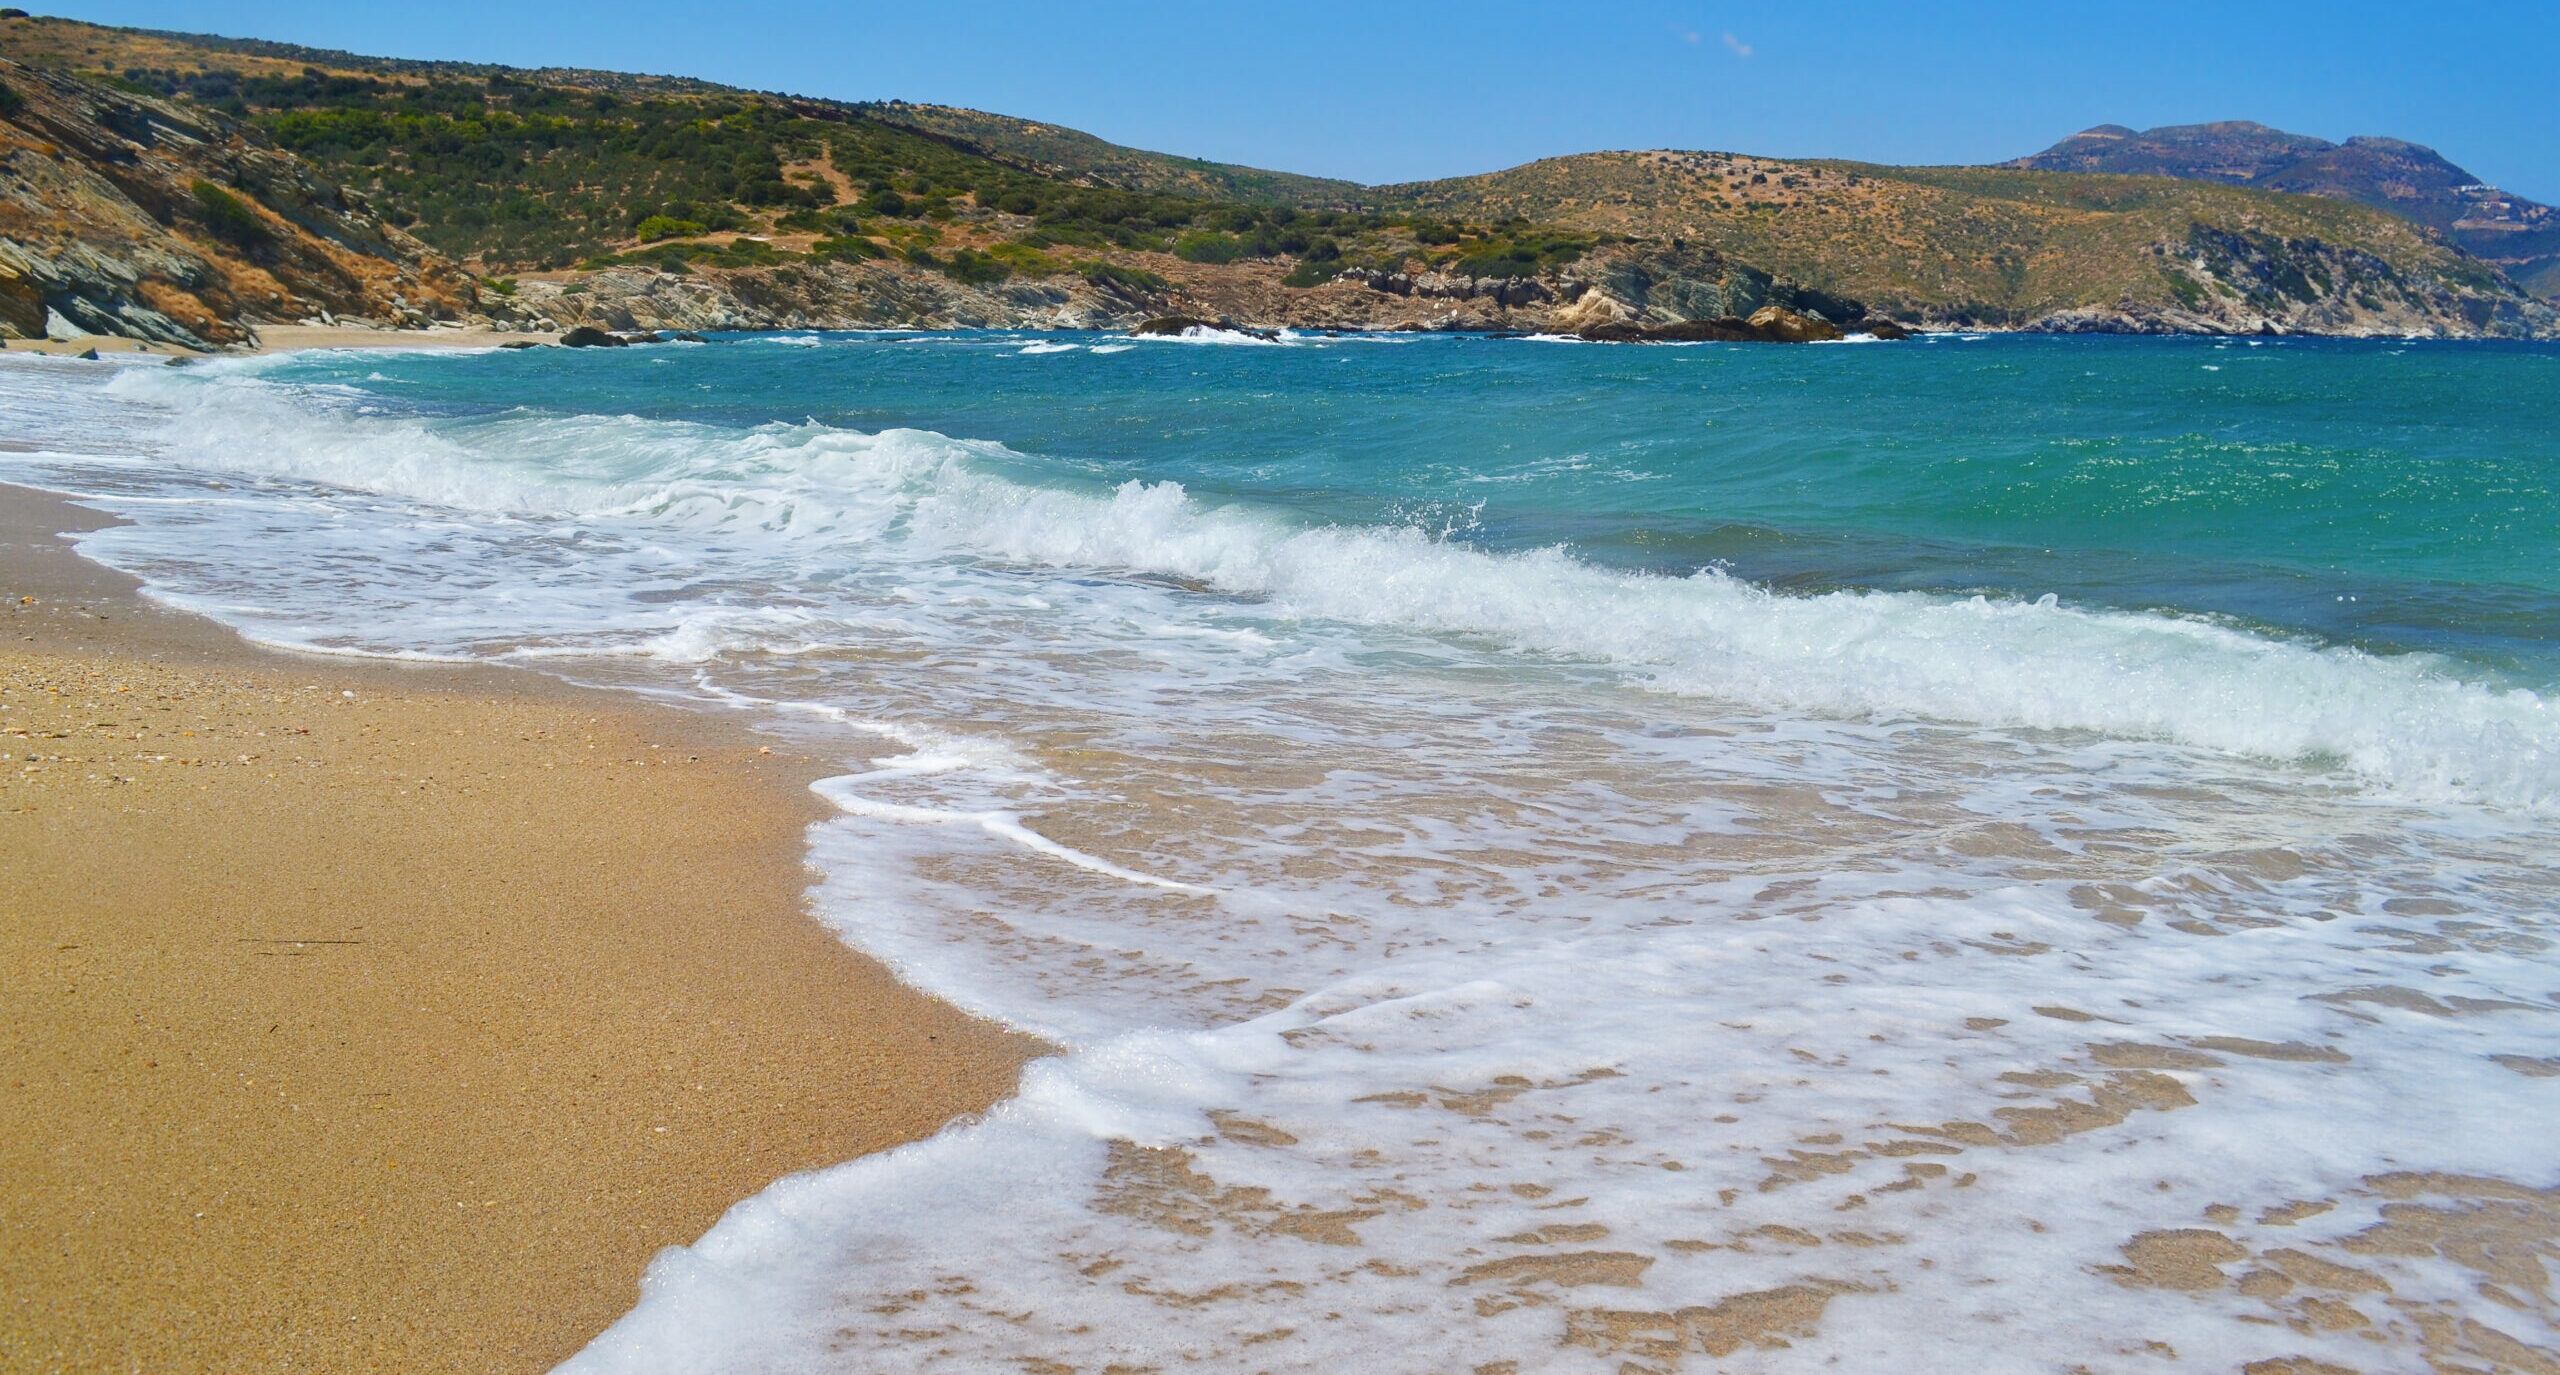 Korasida (the Daughter): The beach with turquoise waters just 2 hours away from Athens